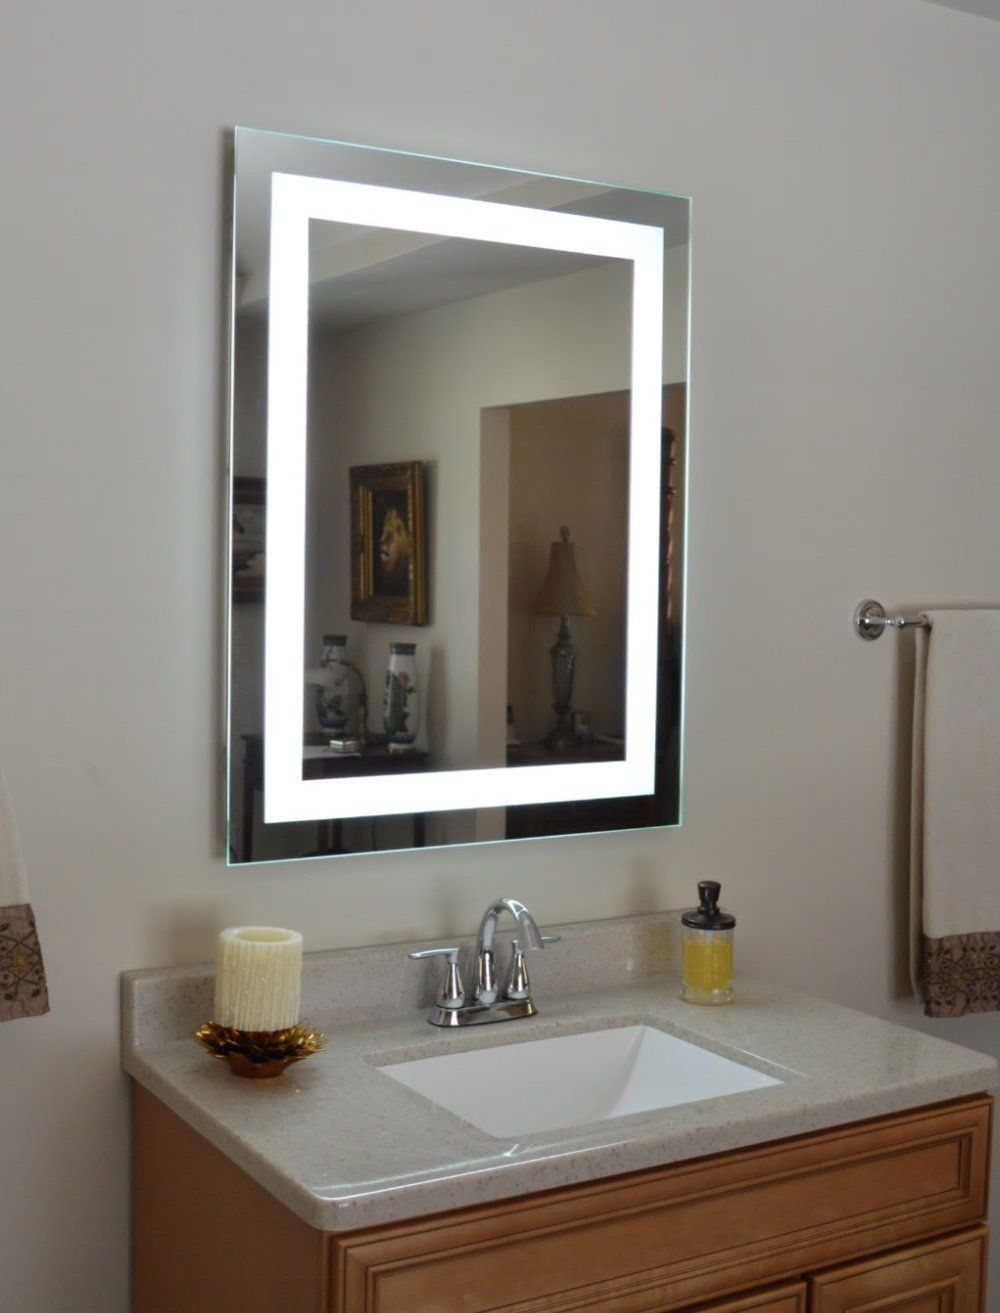 Front Lighted Led Bathroom Vanity Mirror 28 Wide X 36 Tall Rectangular Wall Mounted Modern Master Bathroom Bathroom Vanity Mirror Bathroom Mirror